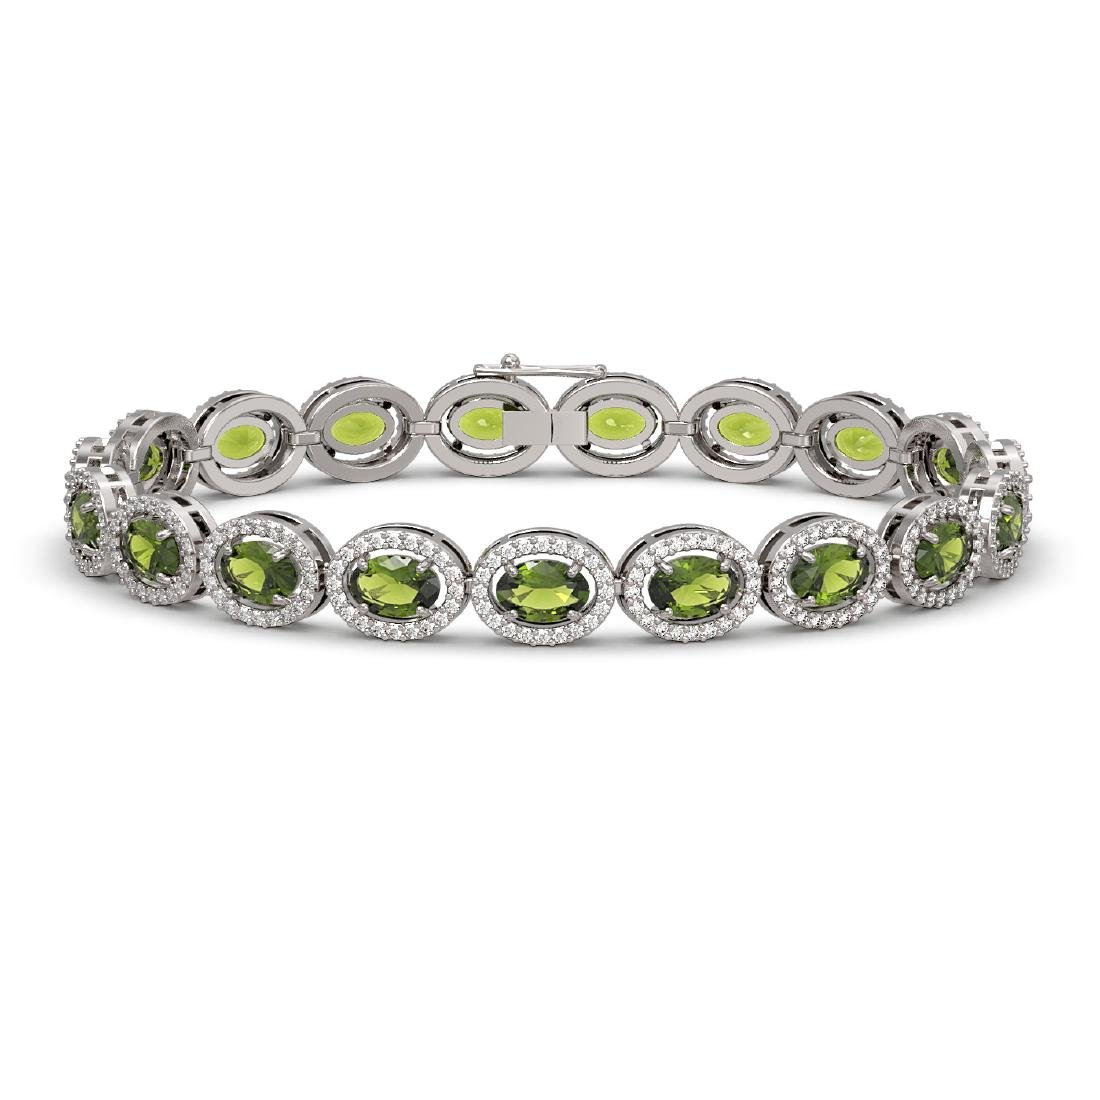 13.87 CTW Tourmaline & Diamond Halo Bracelet 10K White